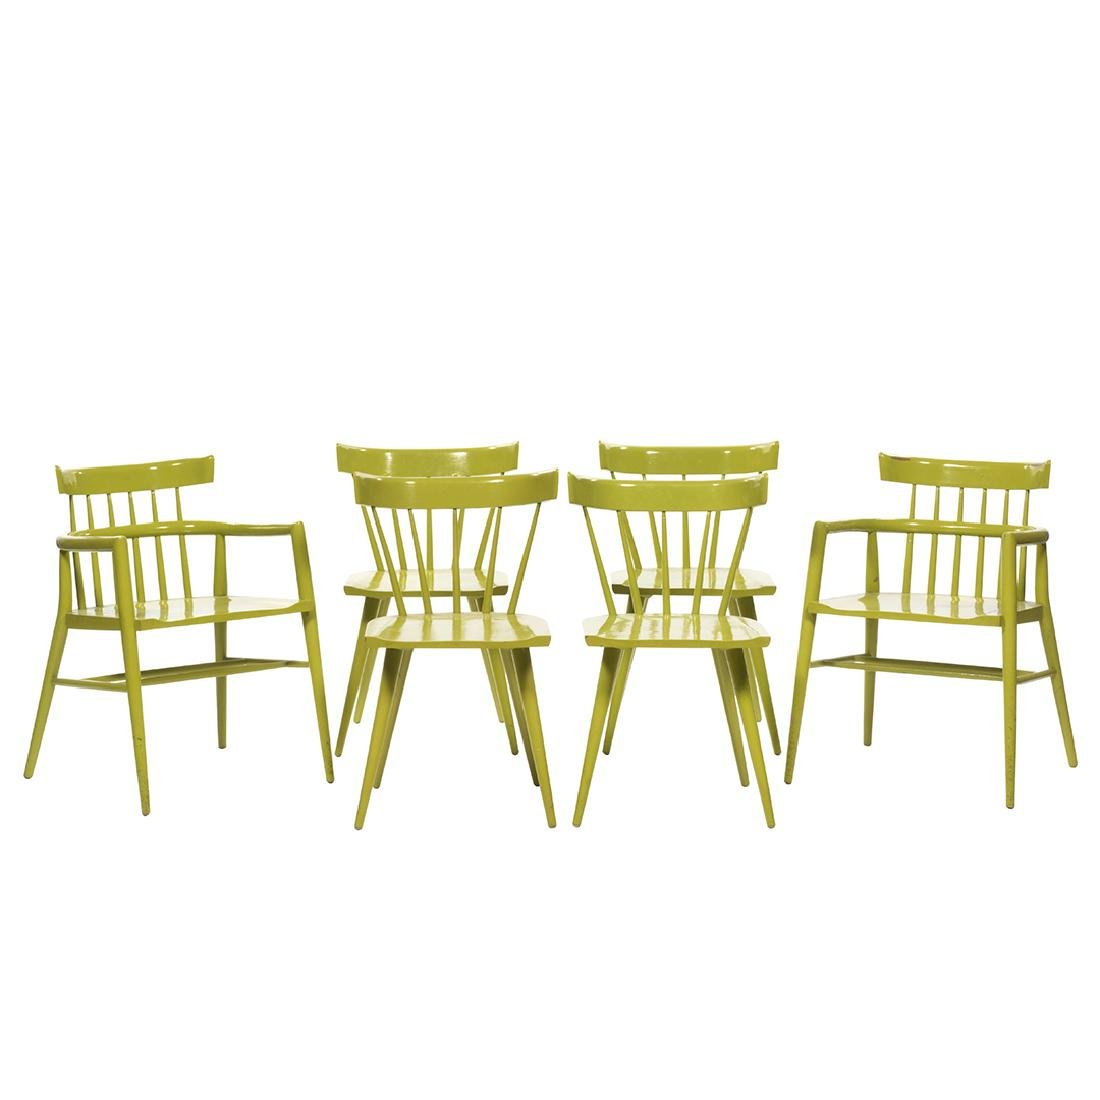 Paul McCobb Dining Chairs (6)